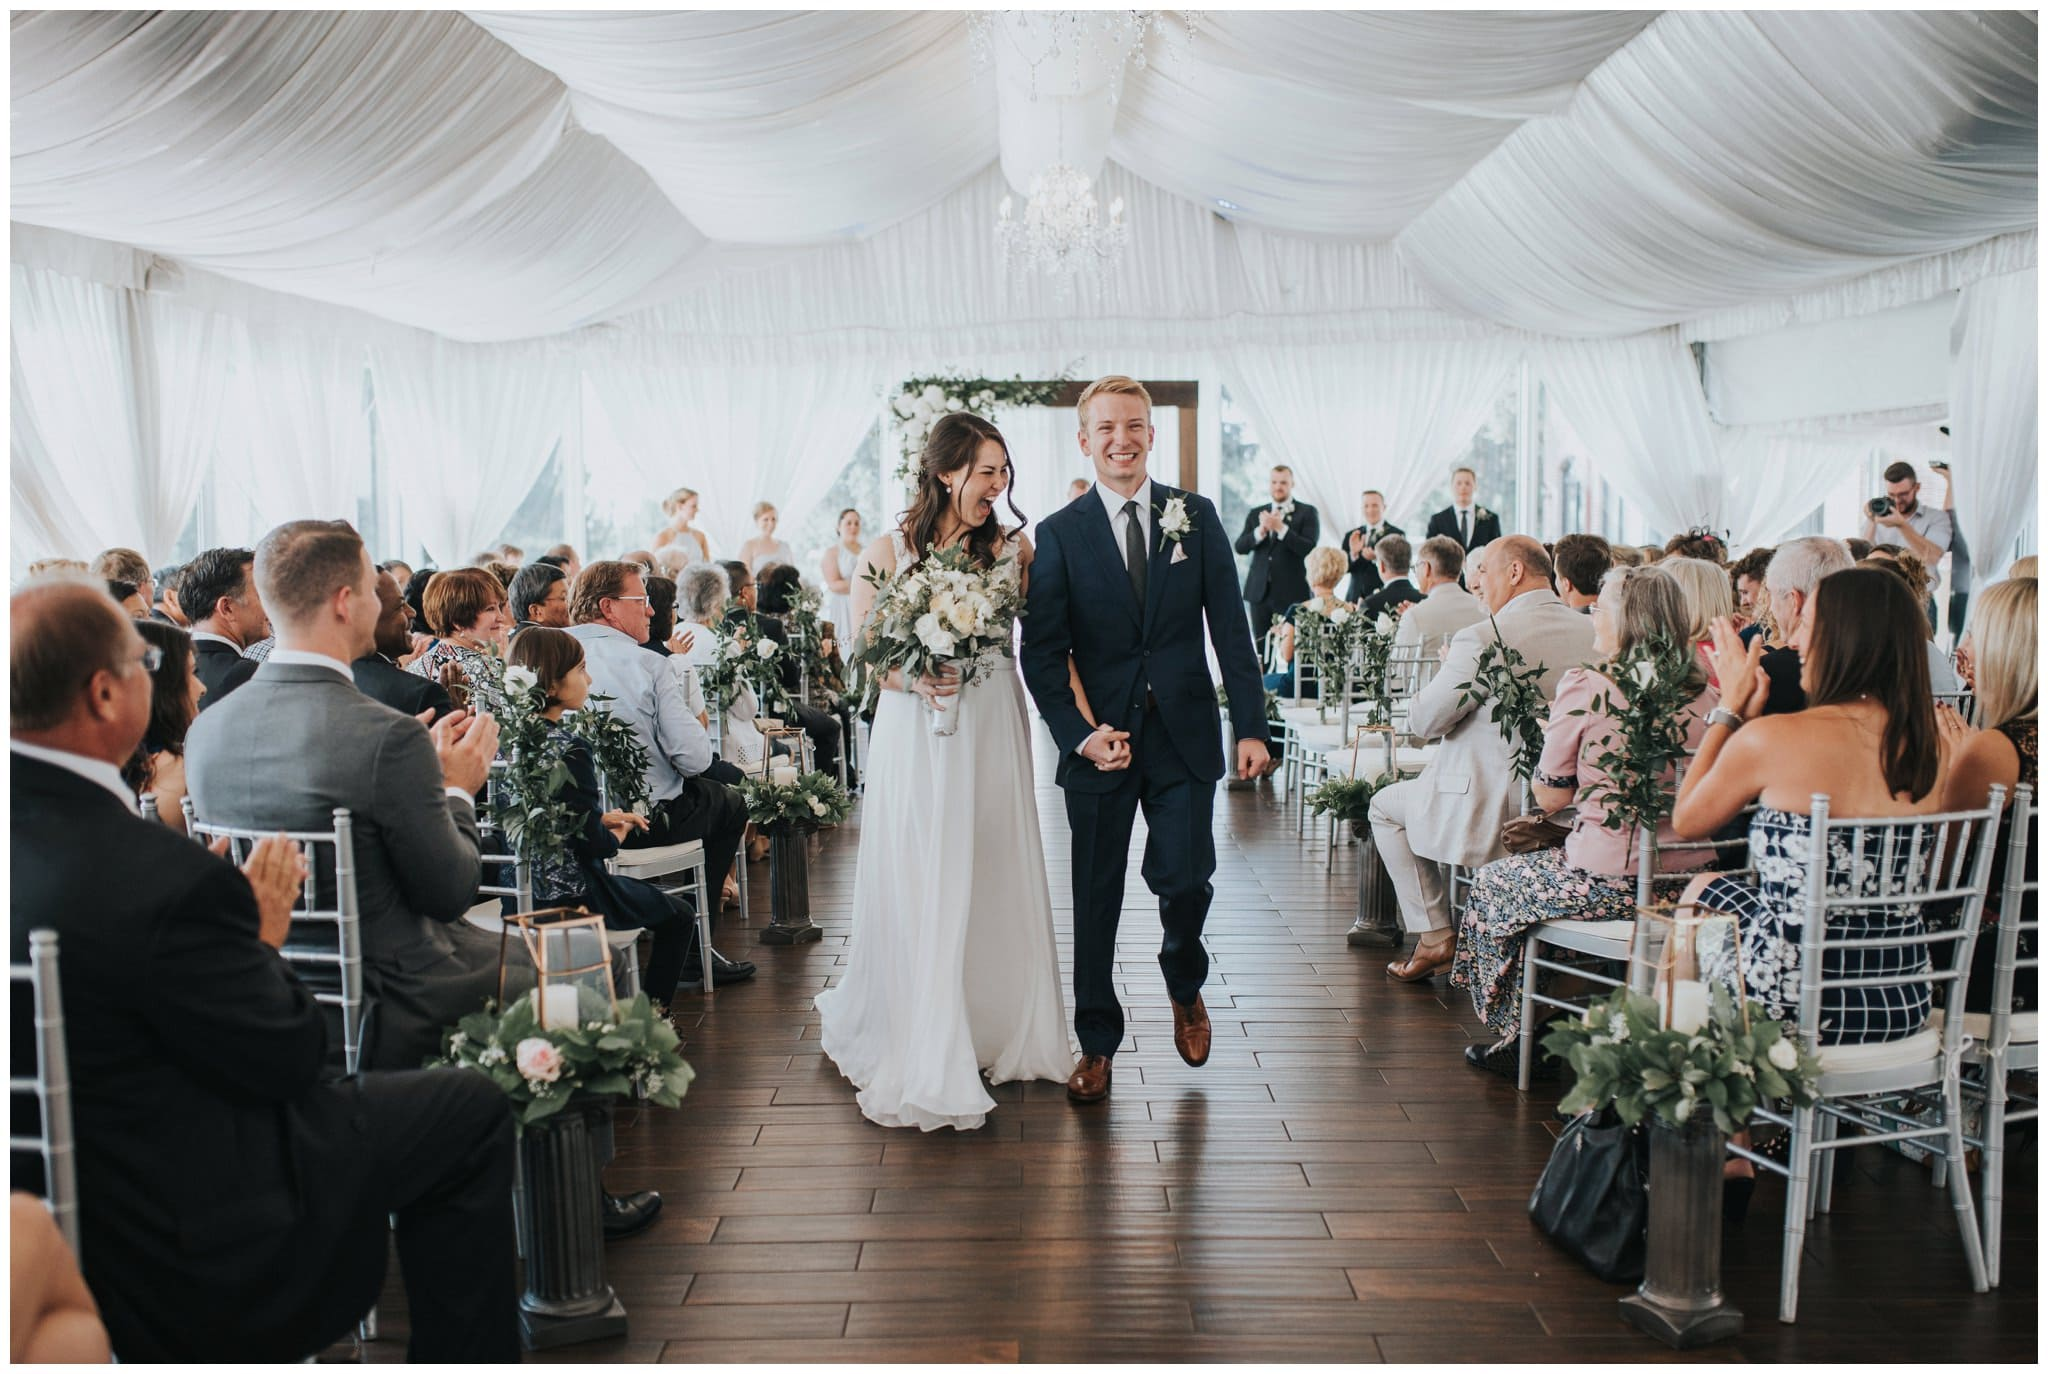 Kelsey and Spenser's Wellshire Golf Course Wedding was a gorgeous sunny day in Denver. A Wellshire Golf Course Wedding is great because they have a gorgeous glass room called the Mountain View Pavilion that you can either use for your ceremony or reception. The light in there is so perfect!